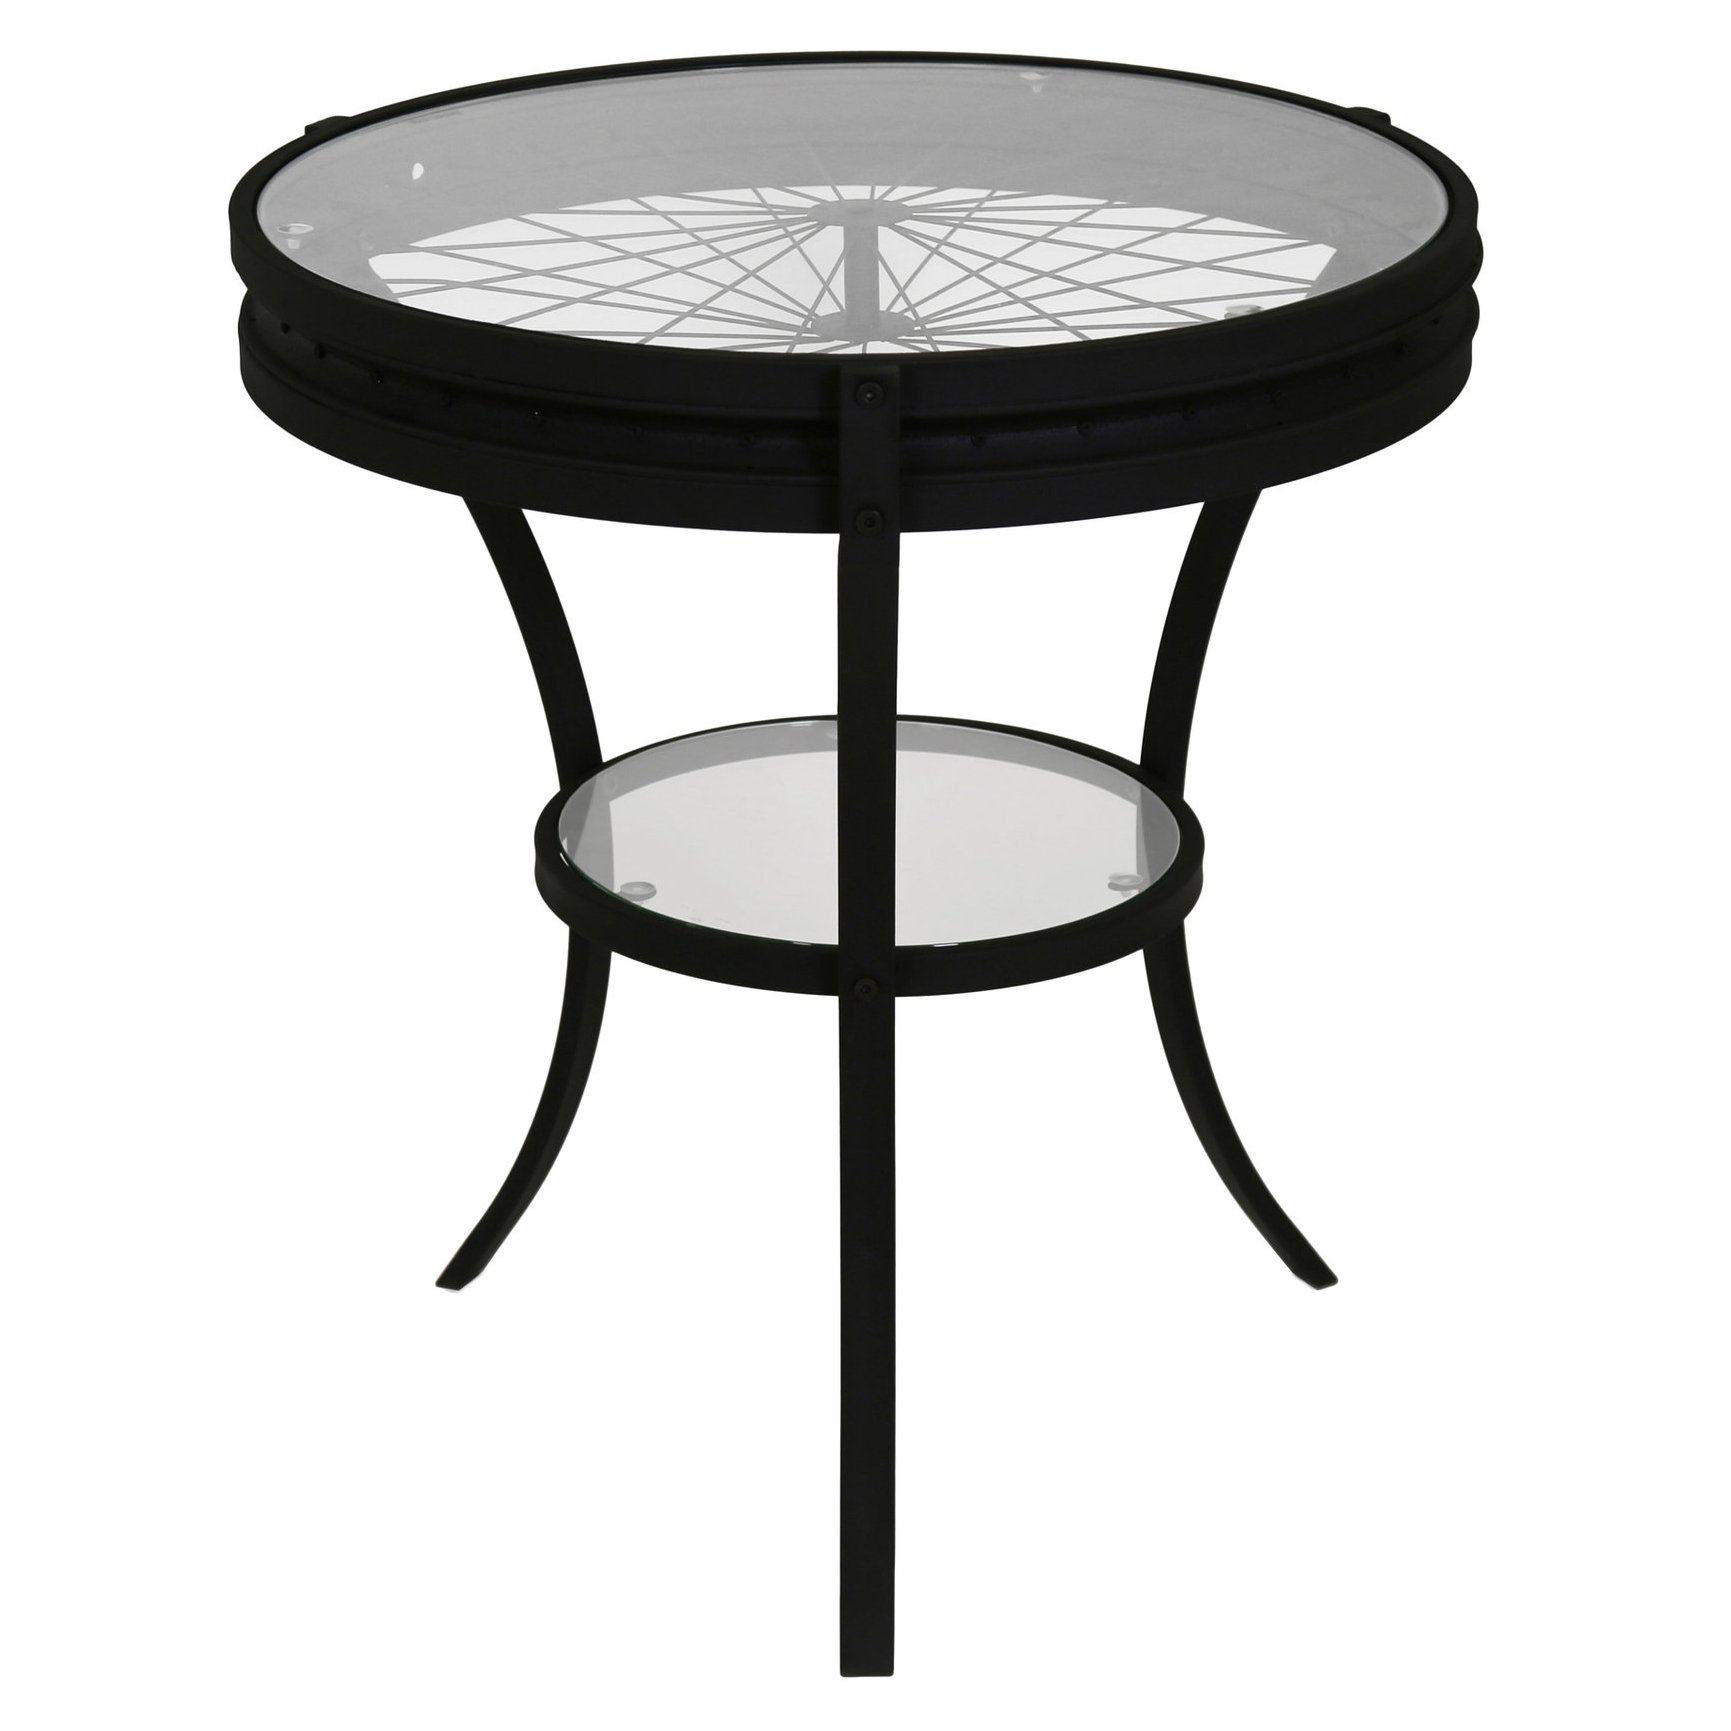 Industrial End Table Black Metal Round Top Glass Bicycle